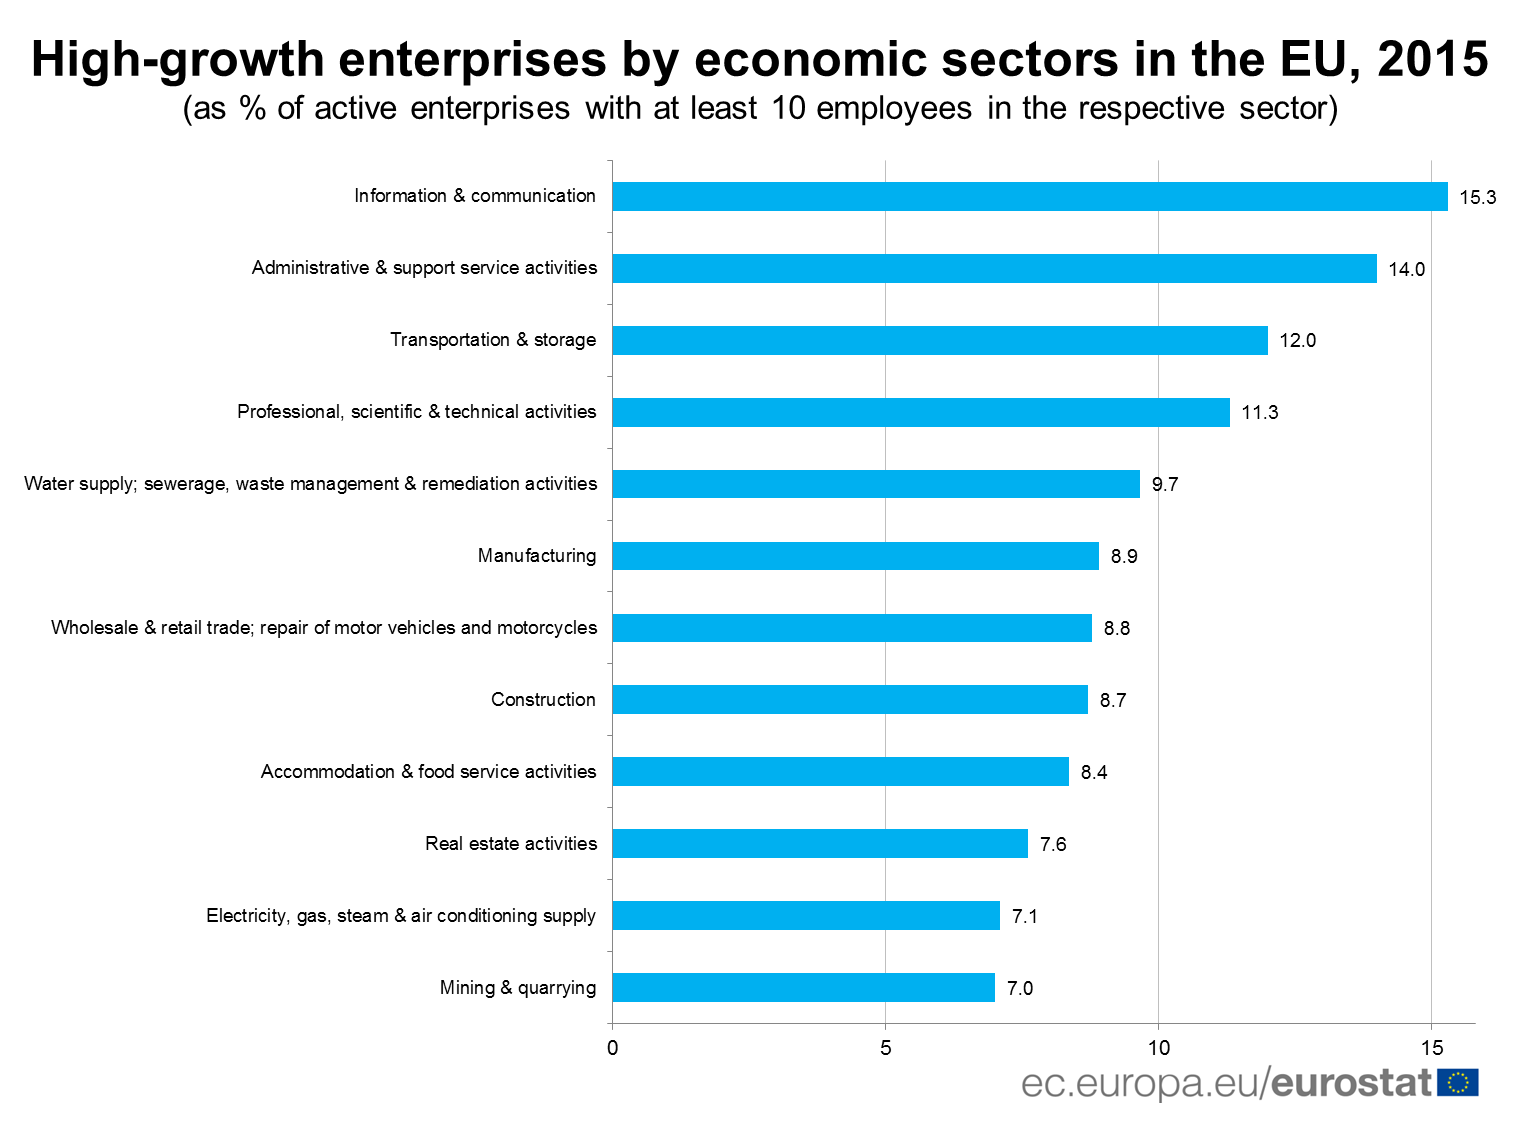 High-growth enterprises by economic sectors in the EU, 2015